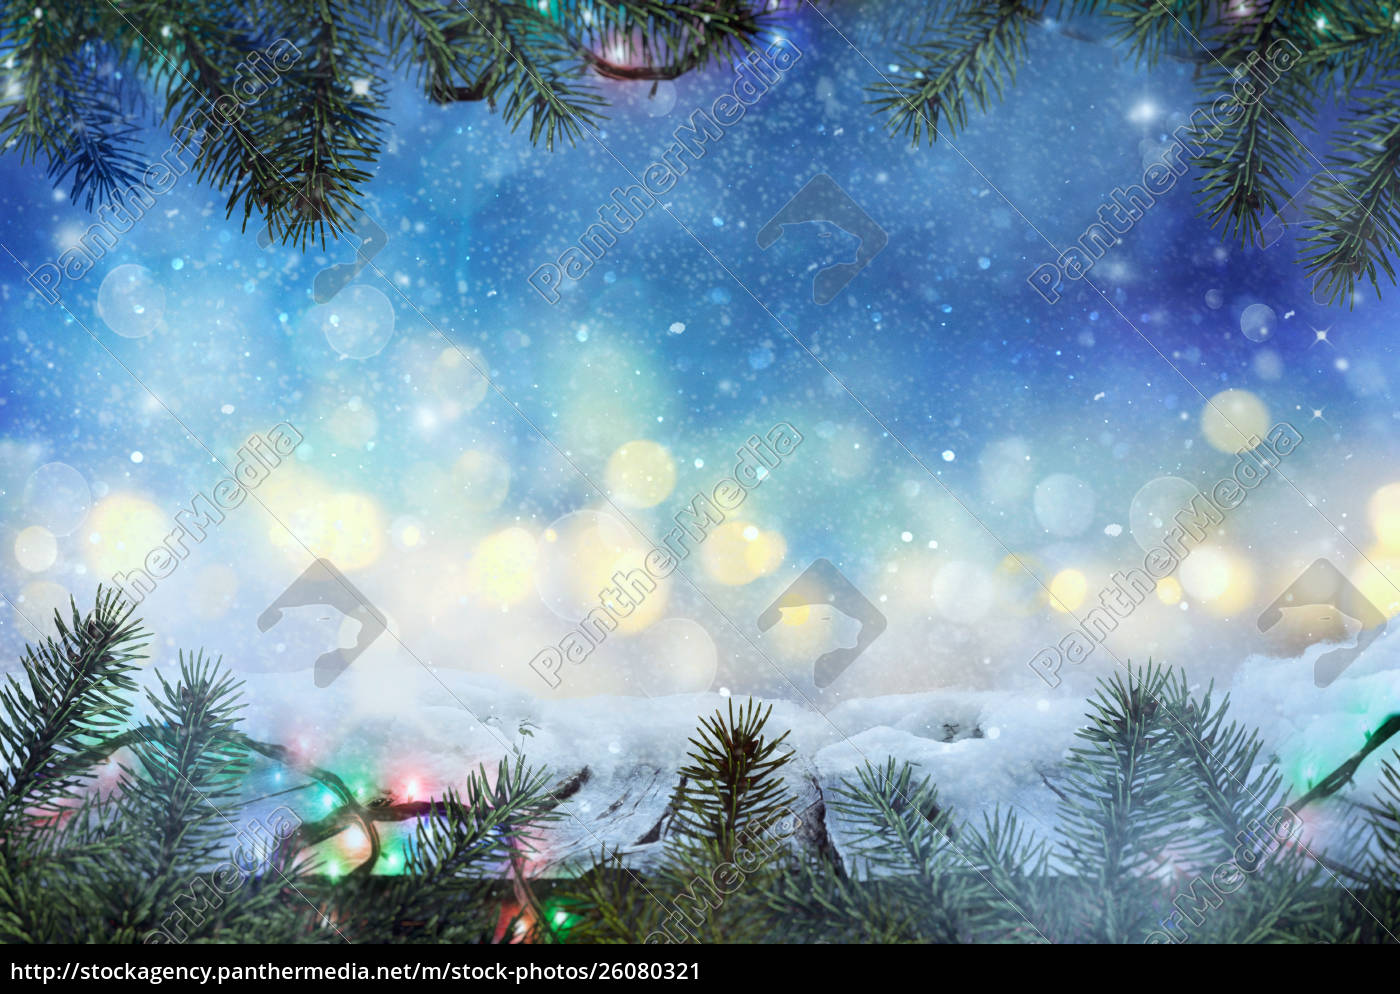 Frozen Christmas.Stock Photo 26080321 Winter Design Christmas Background With Frozen Table Blurred